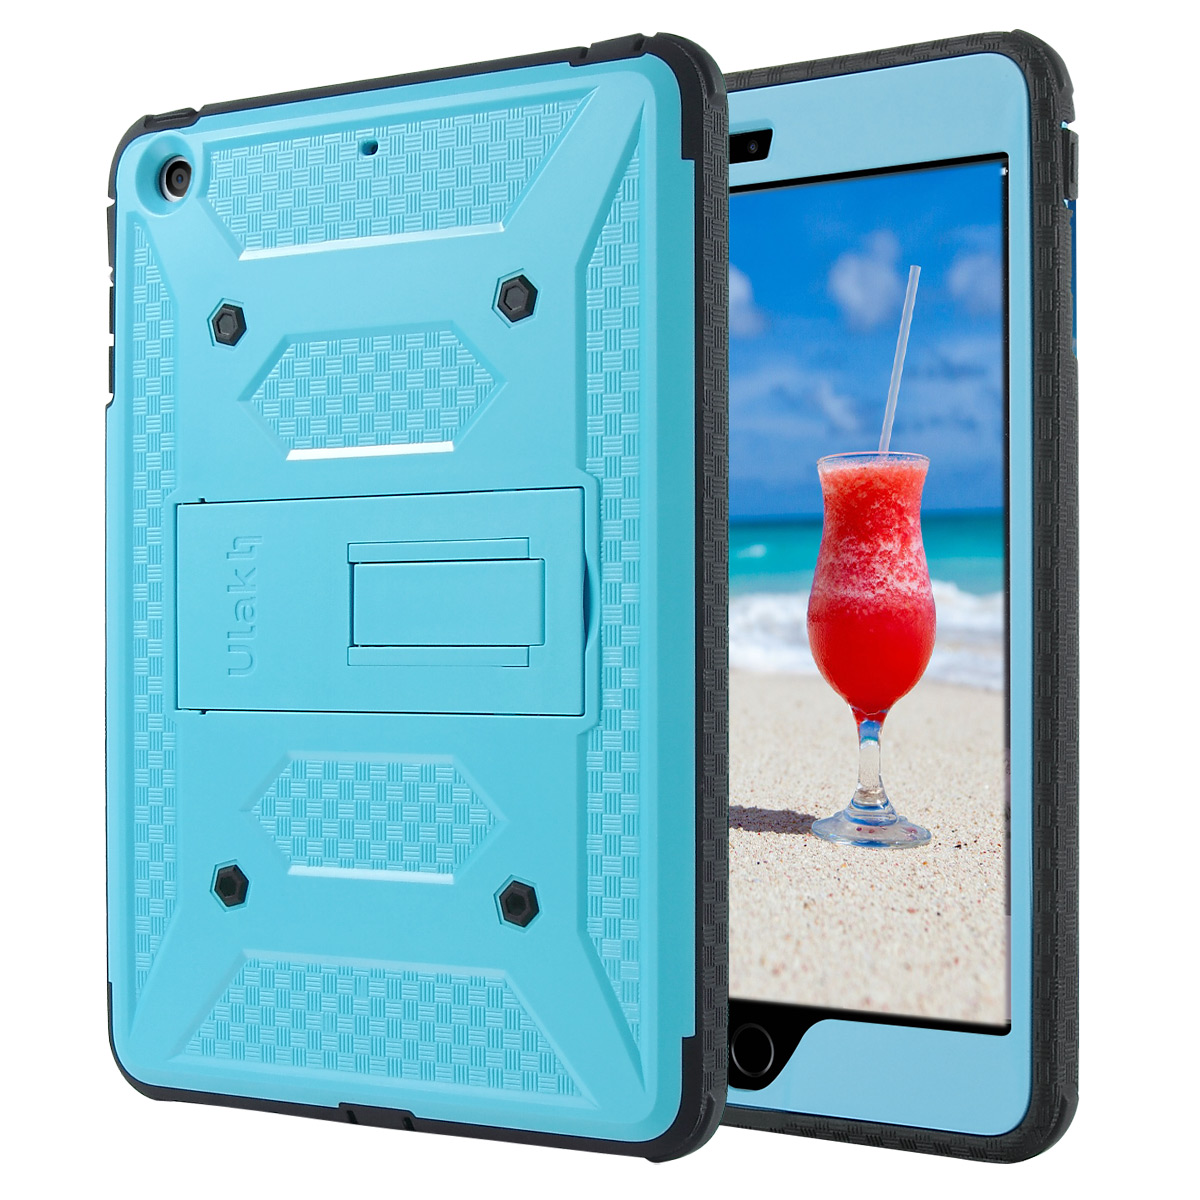 iPad mini 3 / iPad mini 2 / iPad mini Case, ULAK Hybrid Full Body Protective Case with Built-in KickStand for Apple iPad Mini 1/2/3 with Built-in Screen Protector